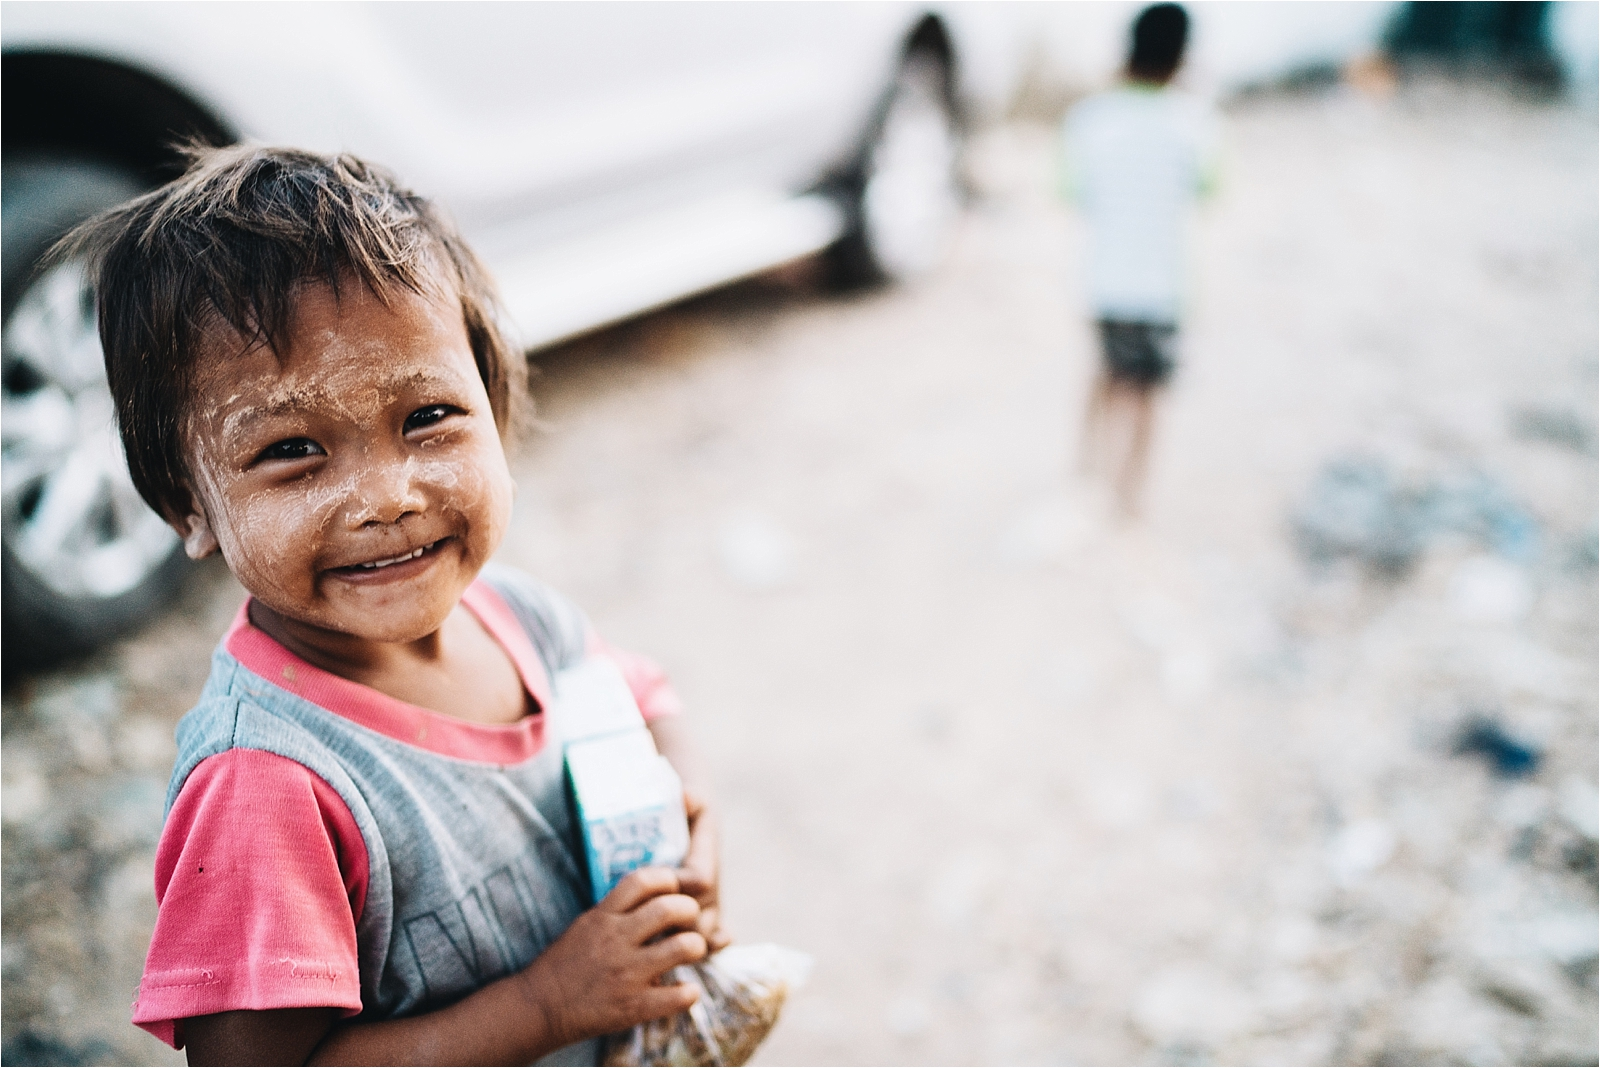 - 10 years ago I met a little girl begging on the streets of Mae Sot, Thailand. I didn't know it then, but this little girl would change my life forever.